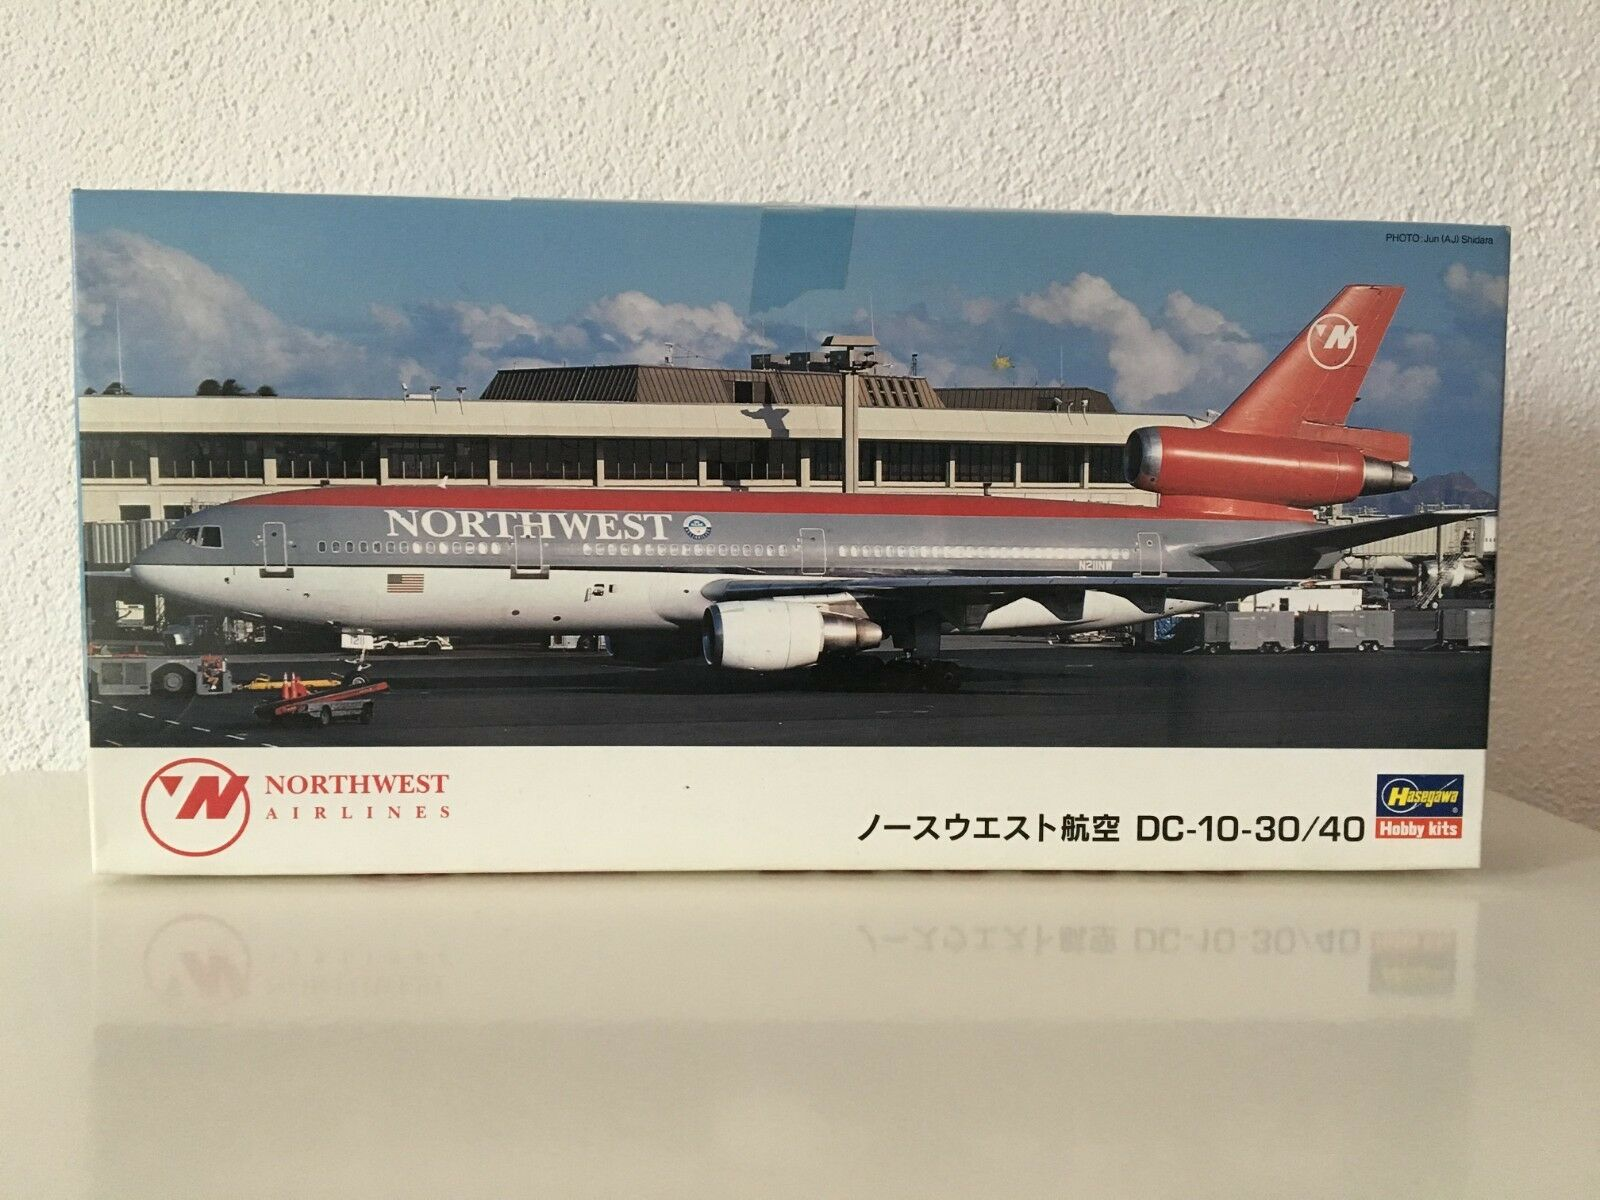 Hasegawa 1 200 McDonnell Douglas dc-10-30 40 northwest airlines airlines airlines modelo-kit ll22 a8c27b